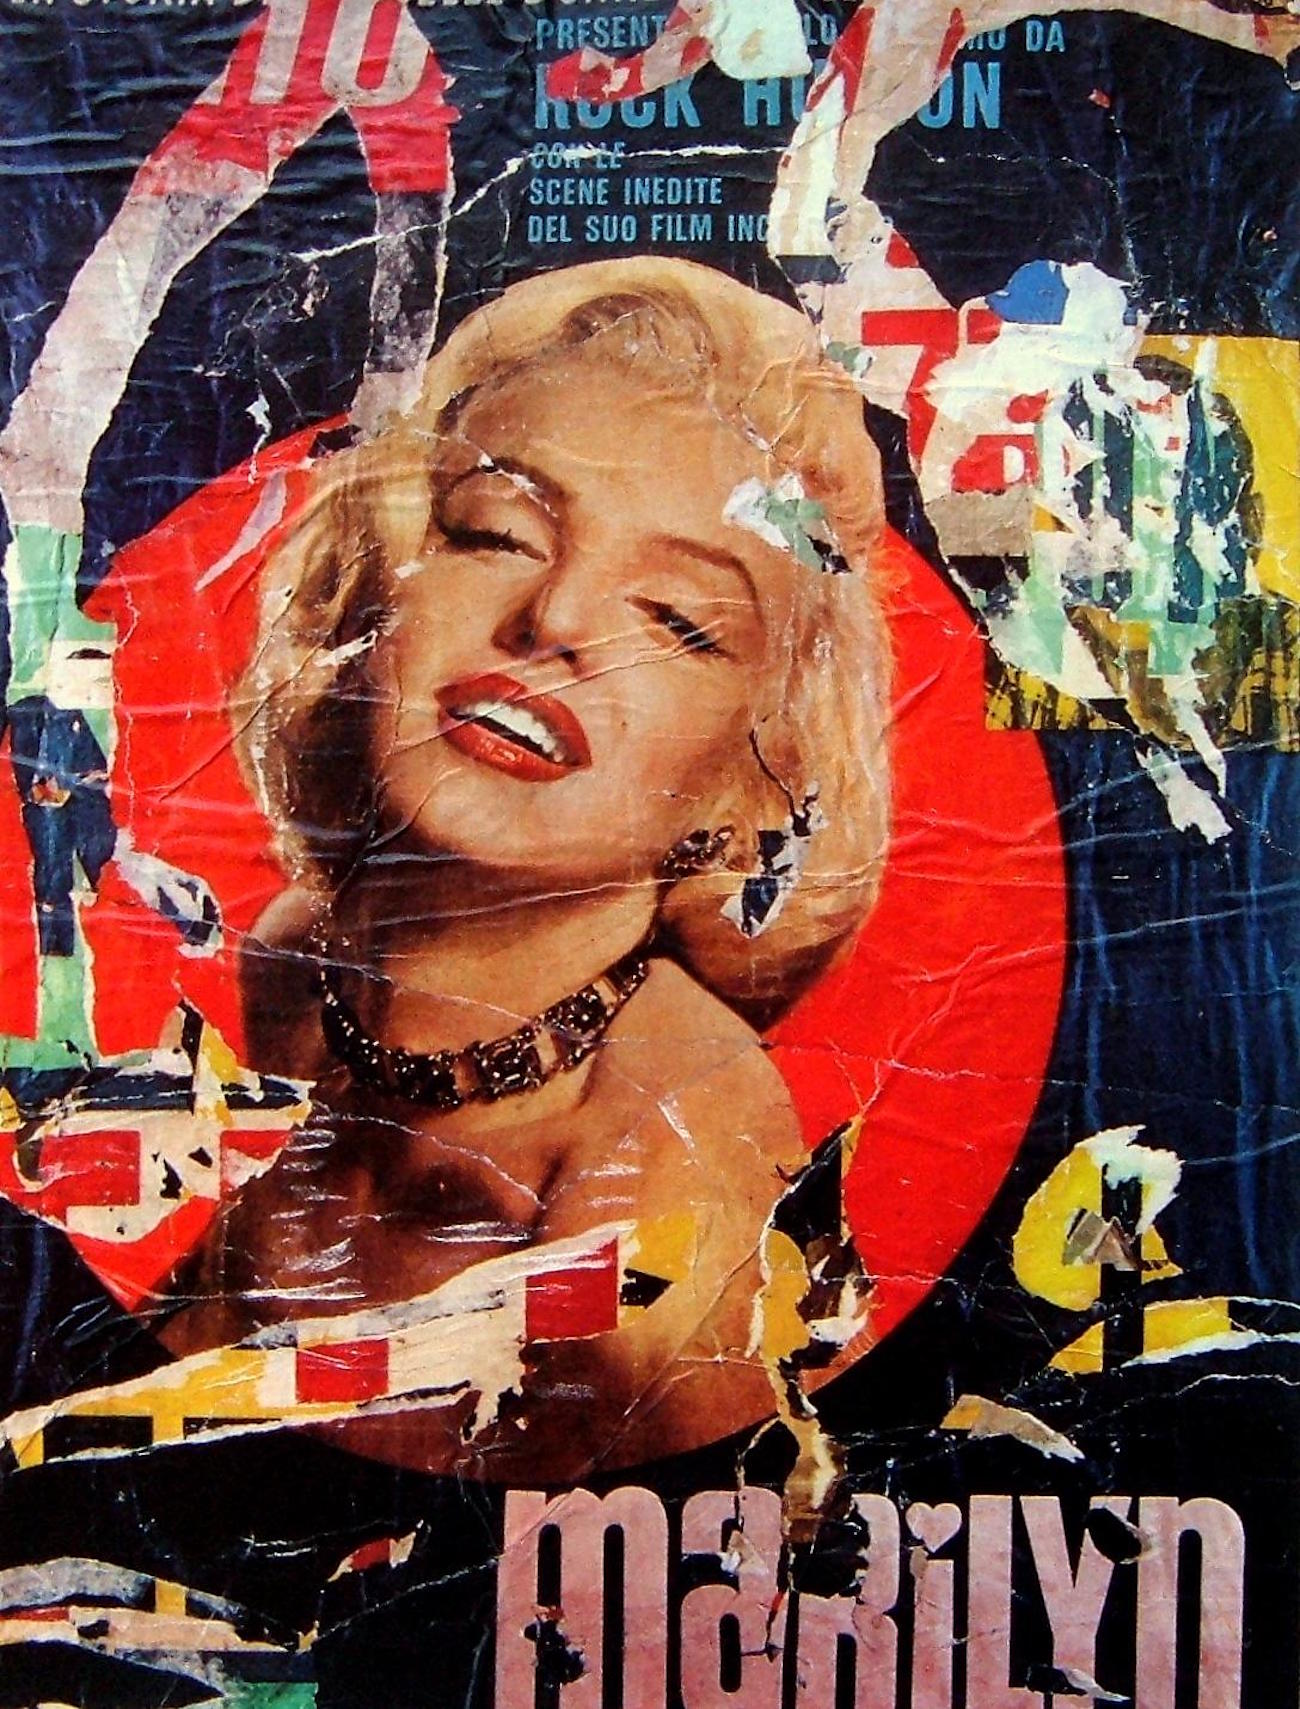 Collage by Mimmo Rotella